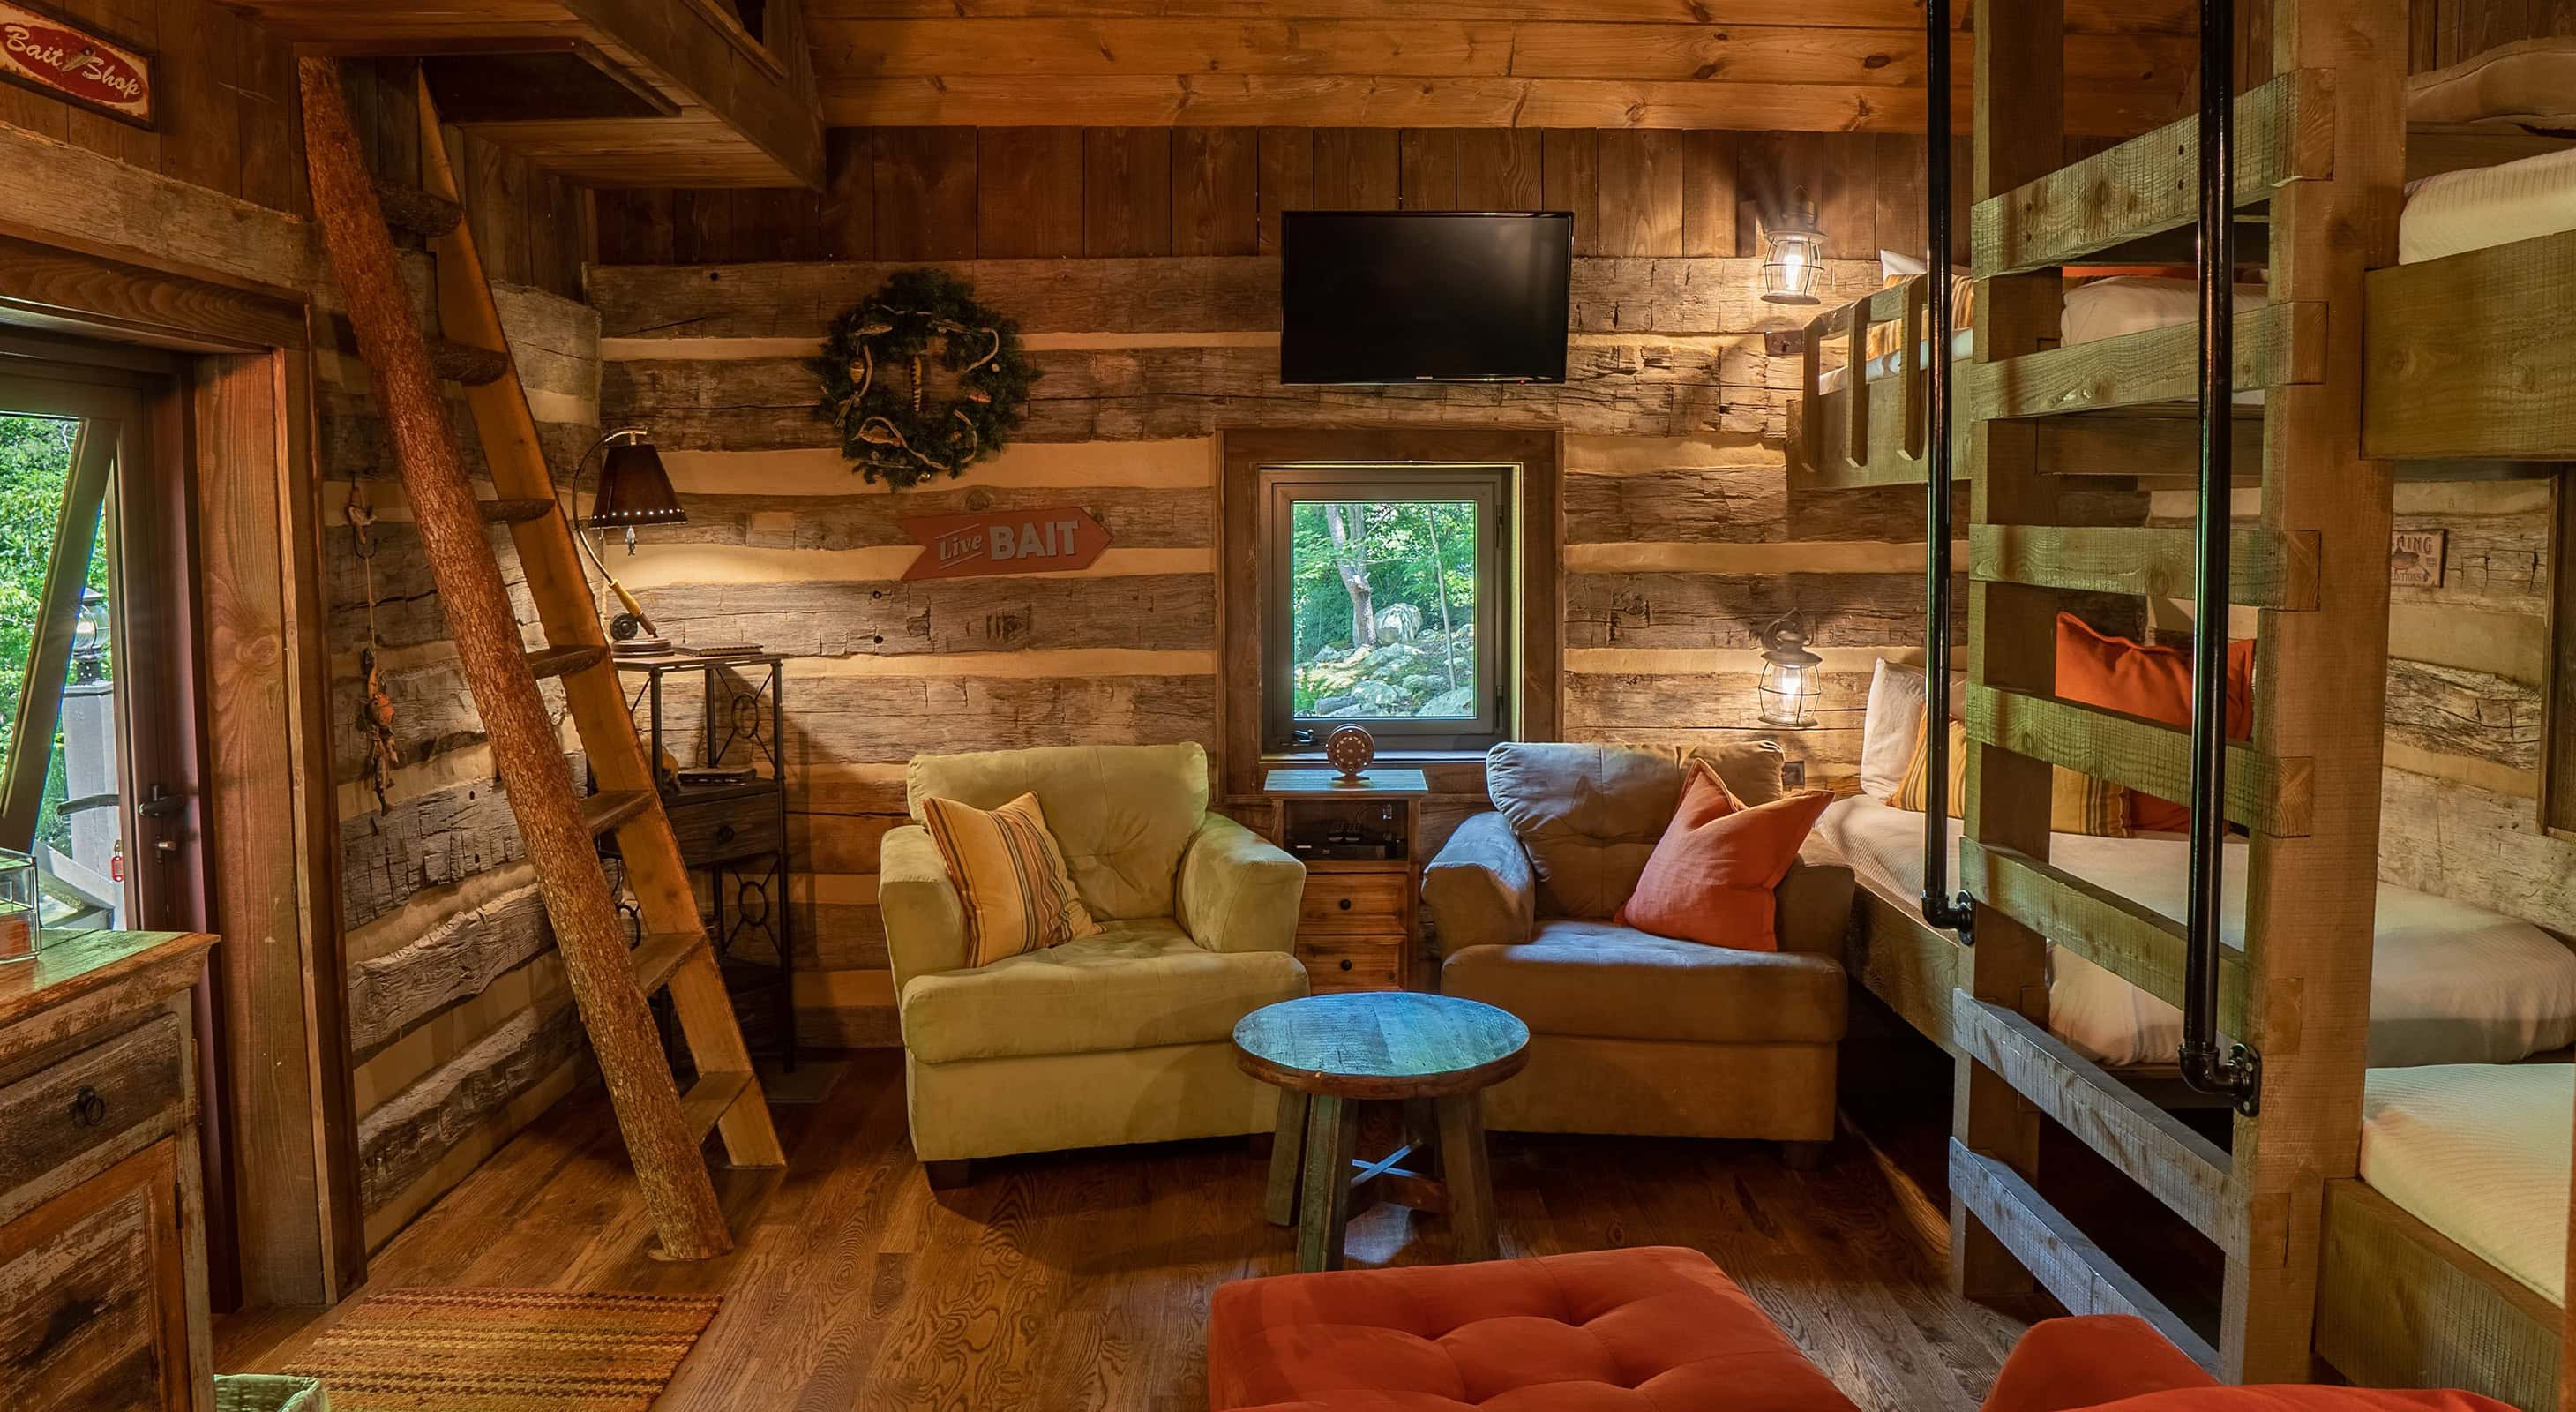 Fishing Creek Cabin interior with bunk beds and a seating area with a flatscreen TV